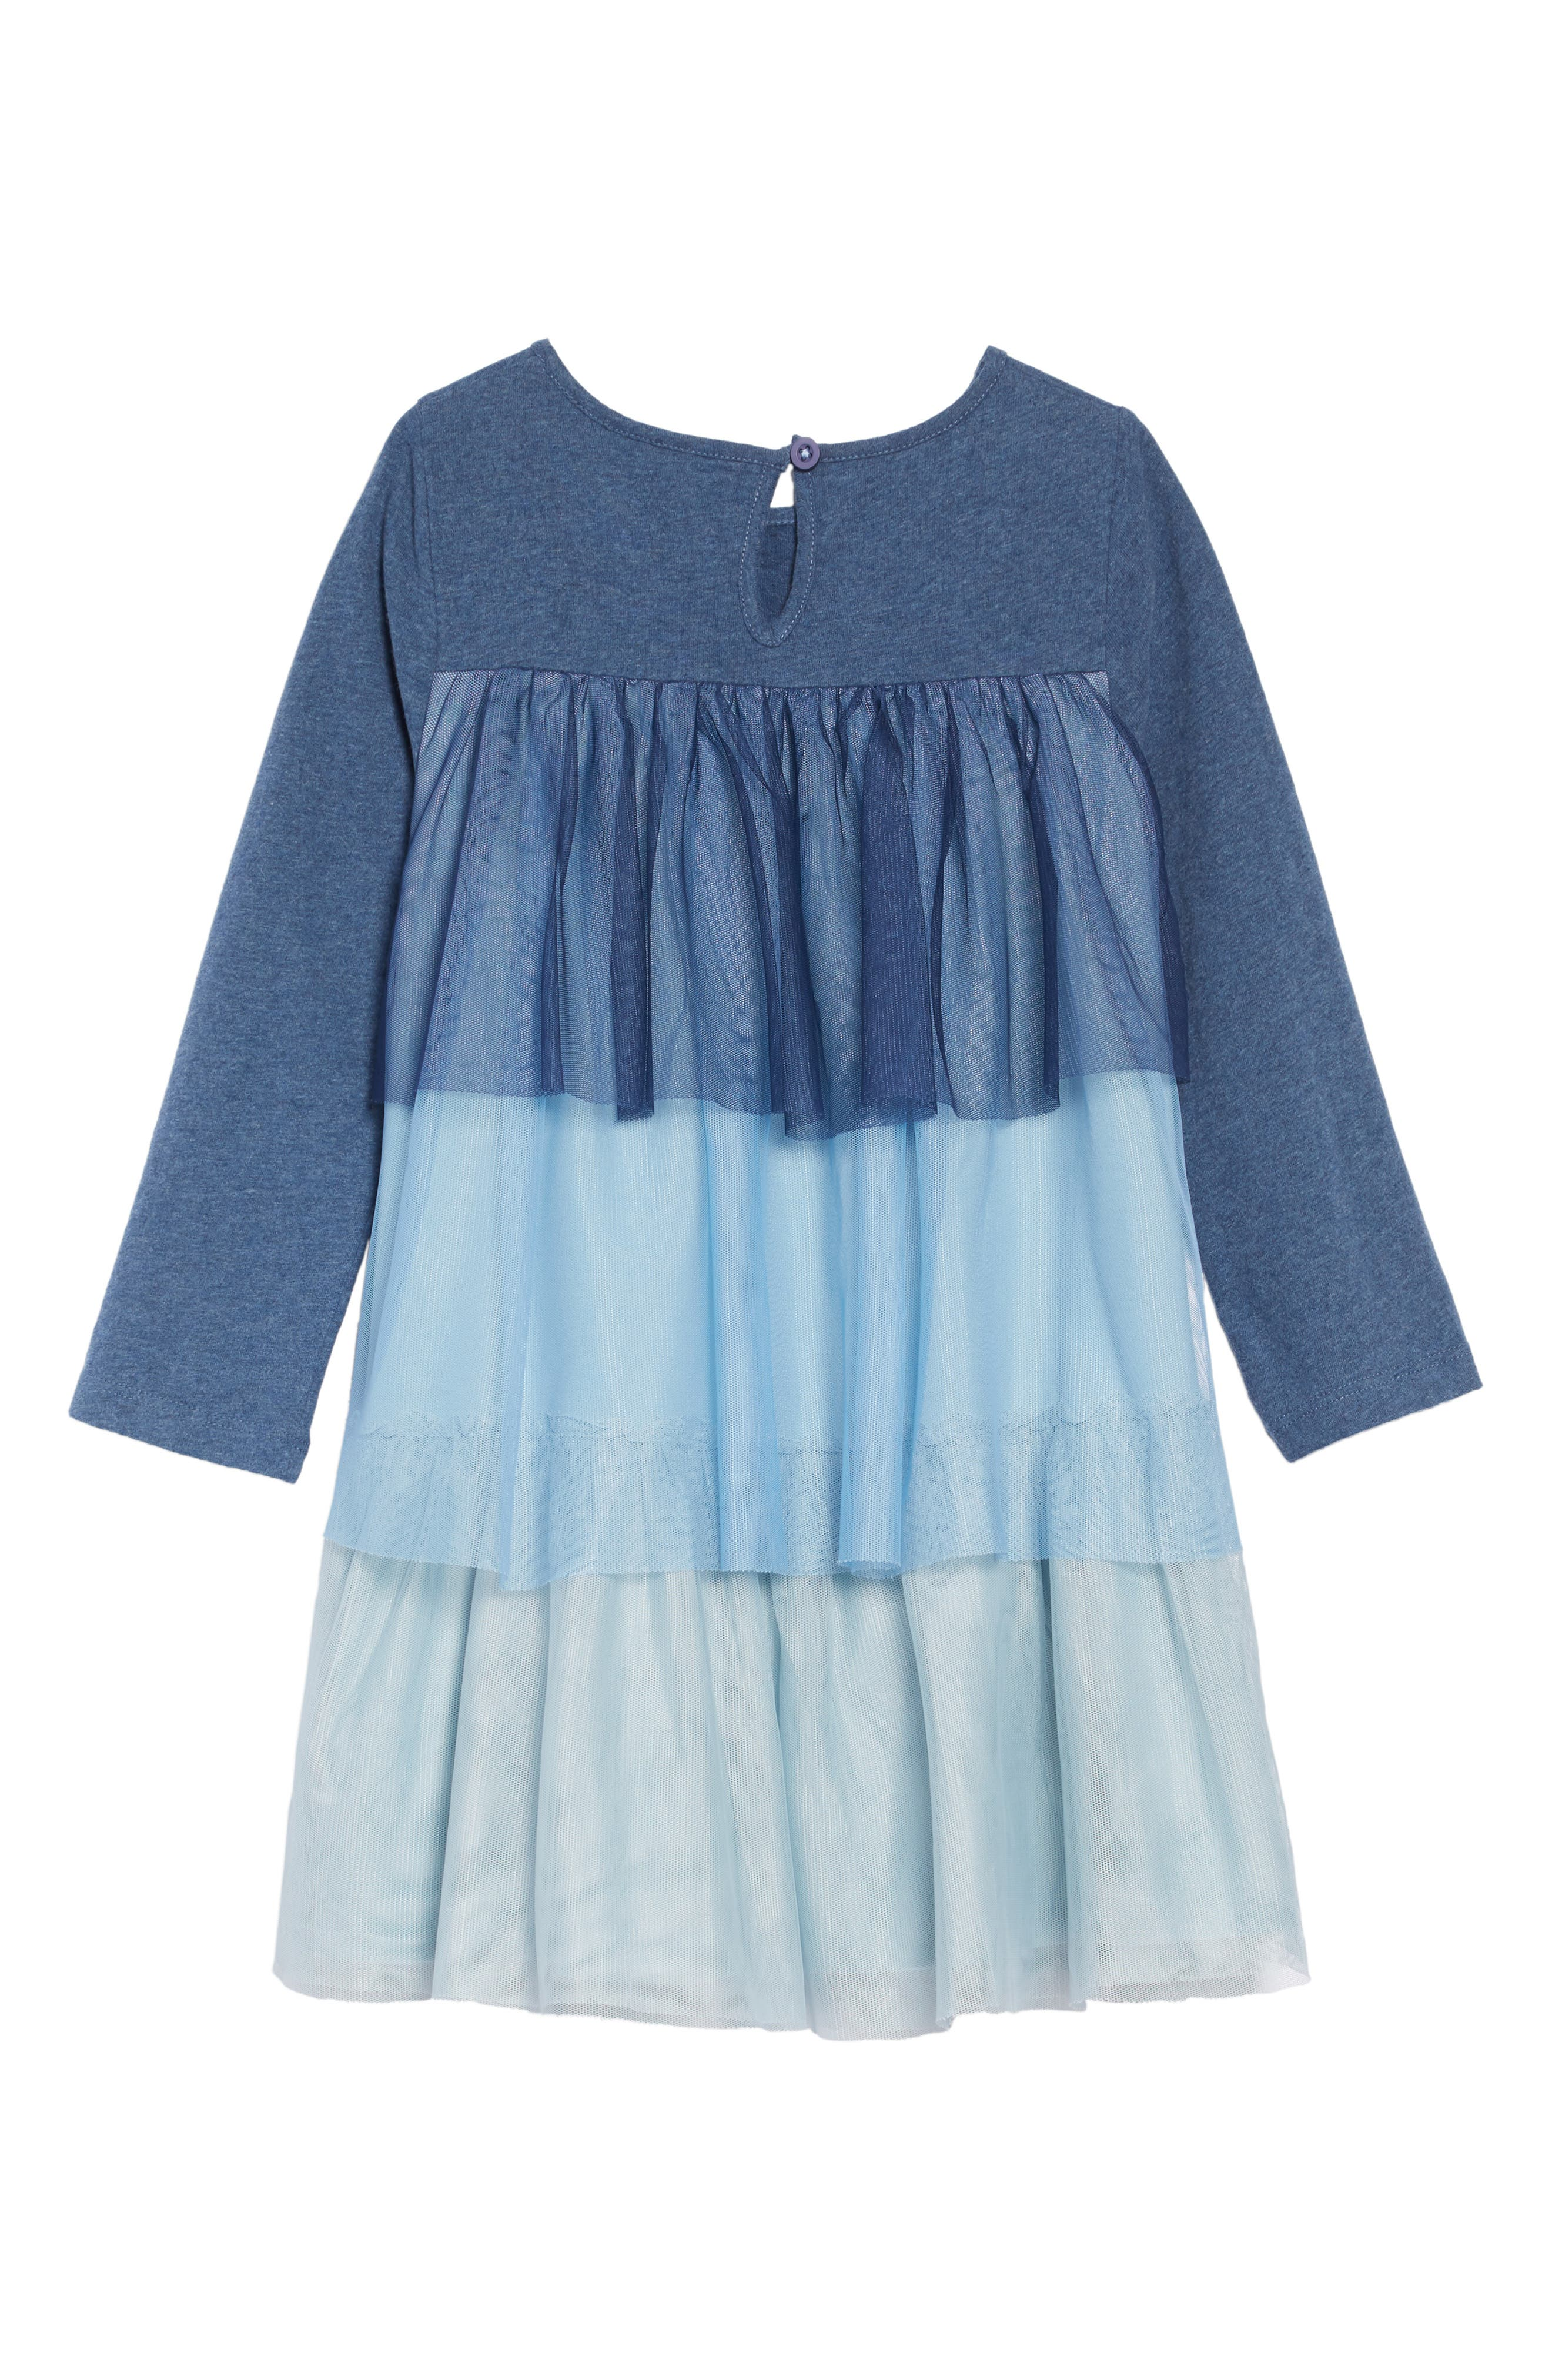 Jersey & Tulle Dress,                             Alternate thumbnail 2, color,                             SCHOOL NAVY OMBRE